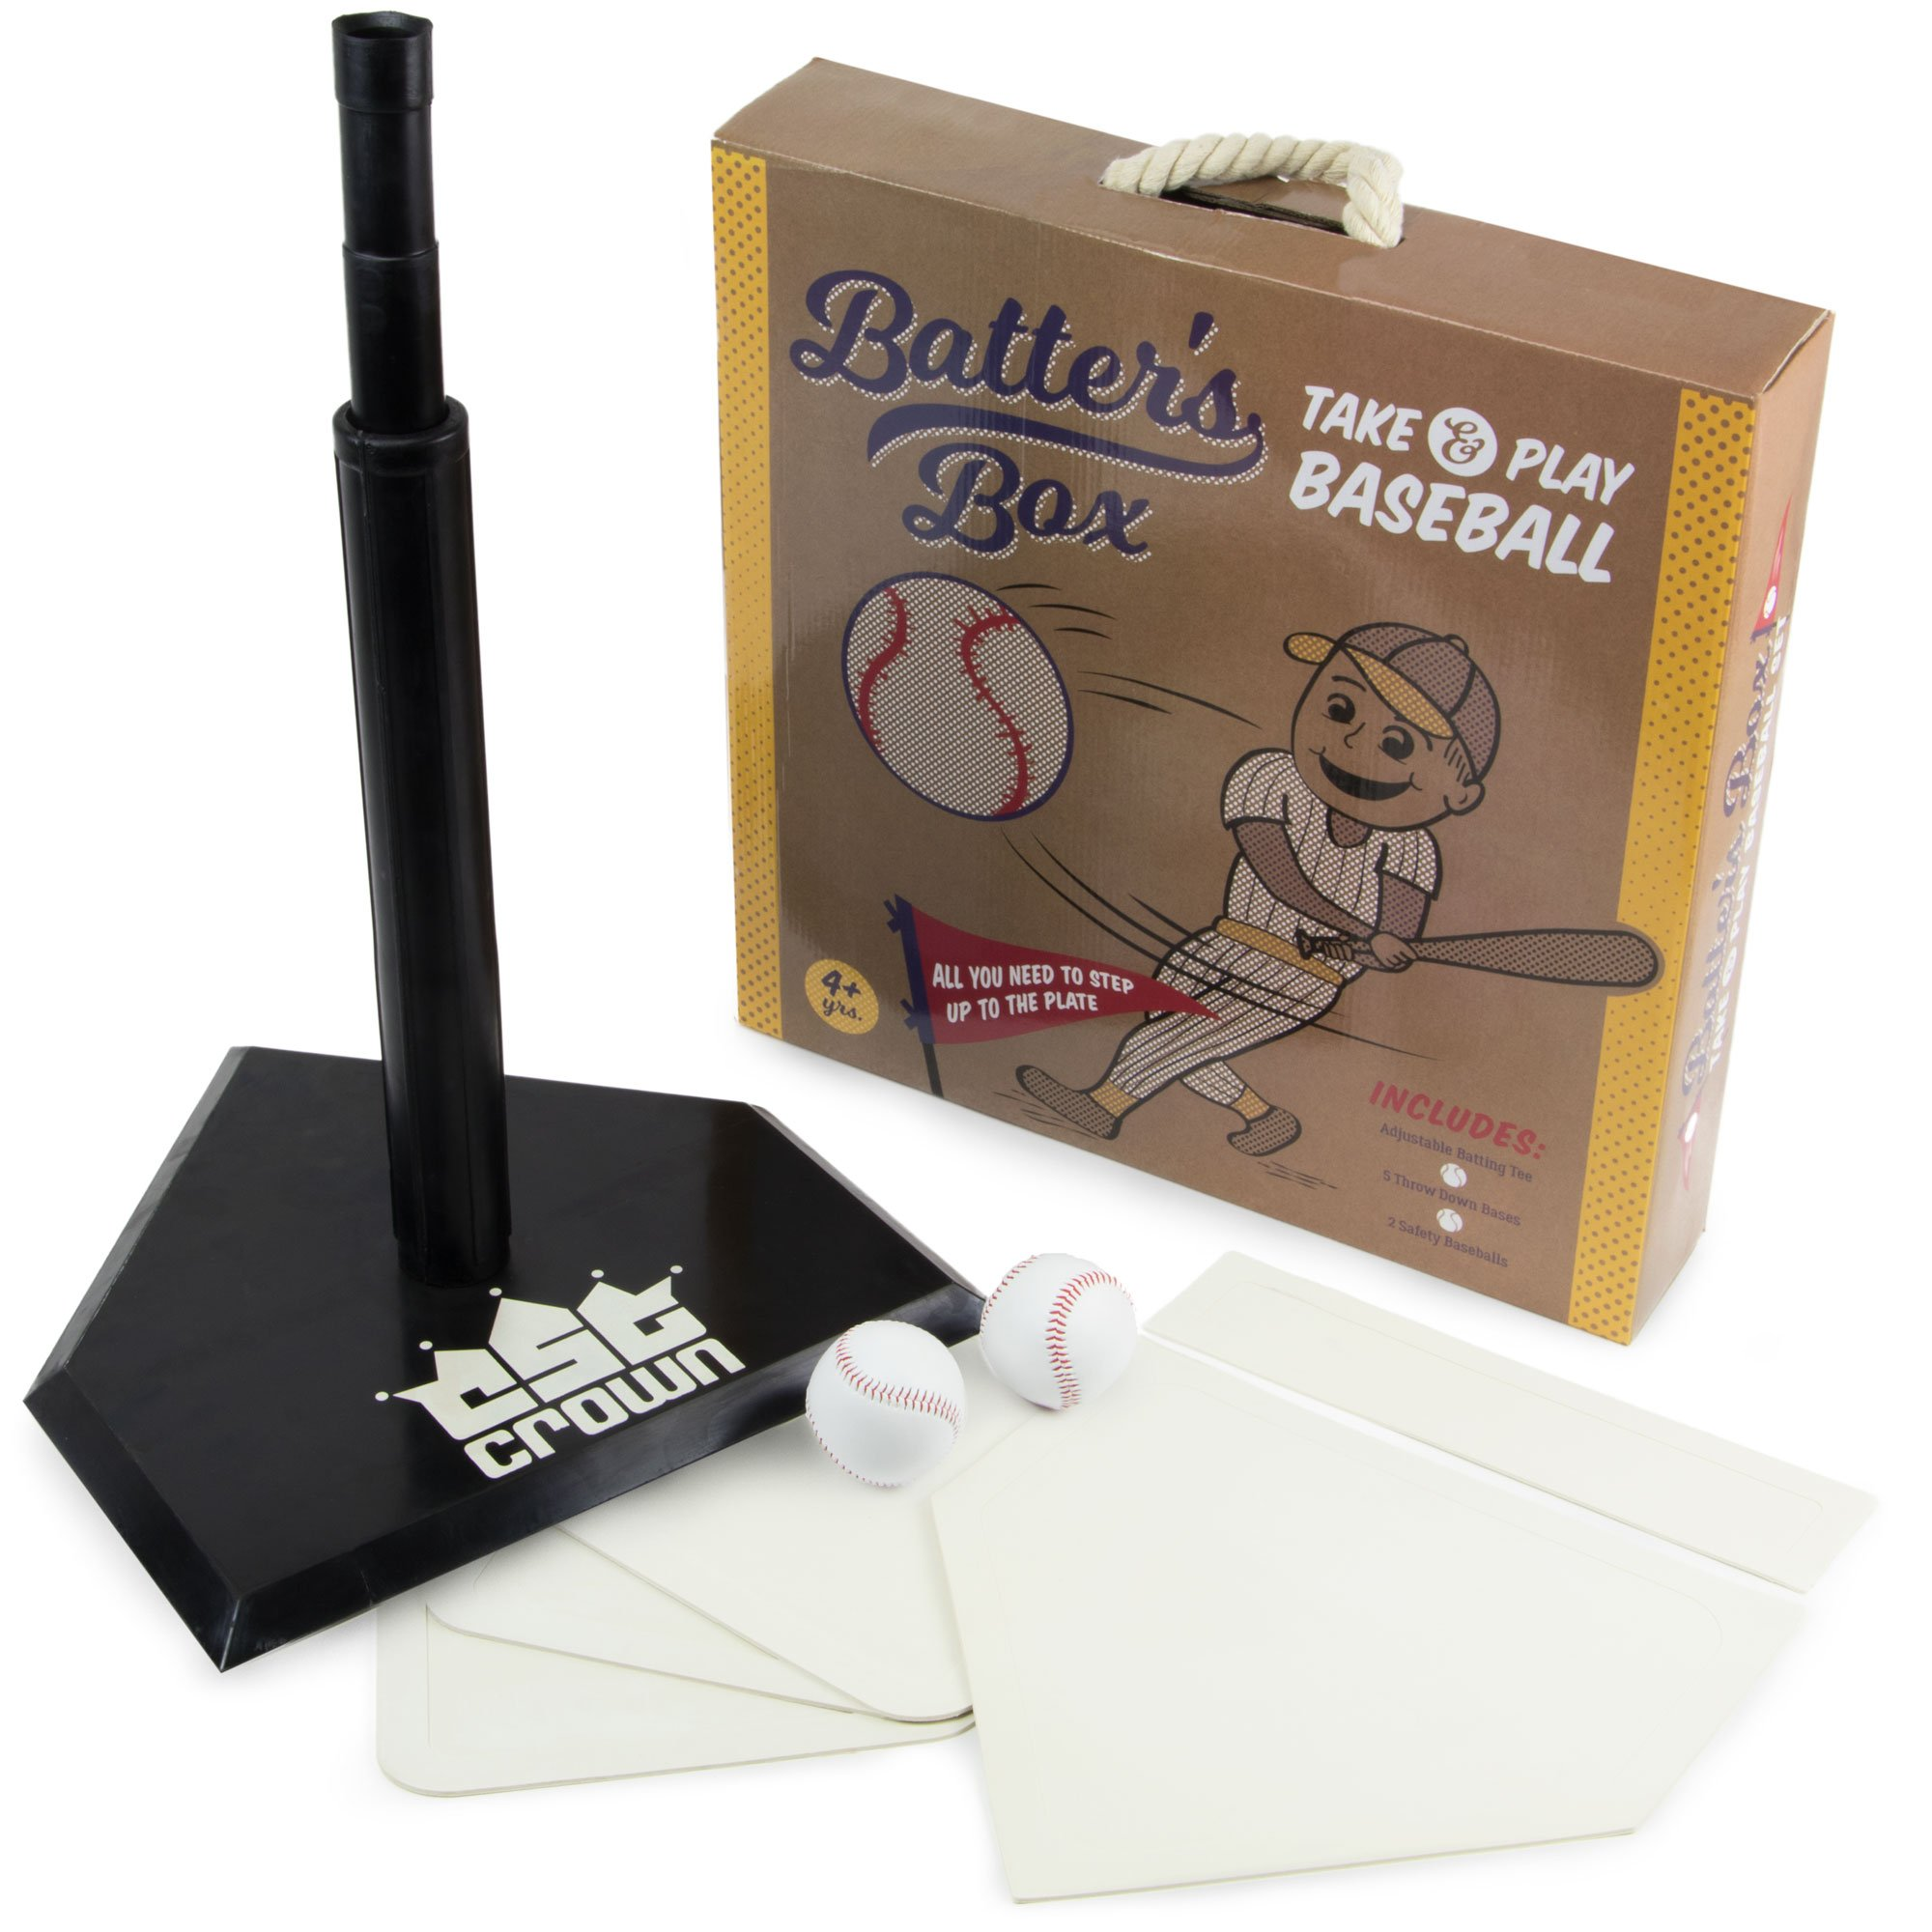 K-Roo Sports Batter's Box - Take & Play Baseball Set, Deluxe Youth Tee-Ball Starter Pack - Includes an Adjustable Batting Tee, 5 Rubber Bases, 2 Safety Balls, Carrying Case by K-Roo Sports